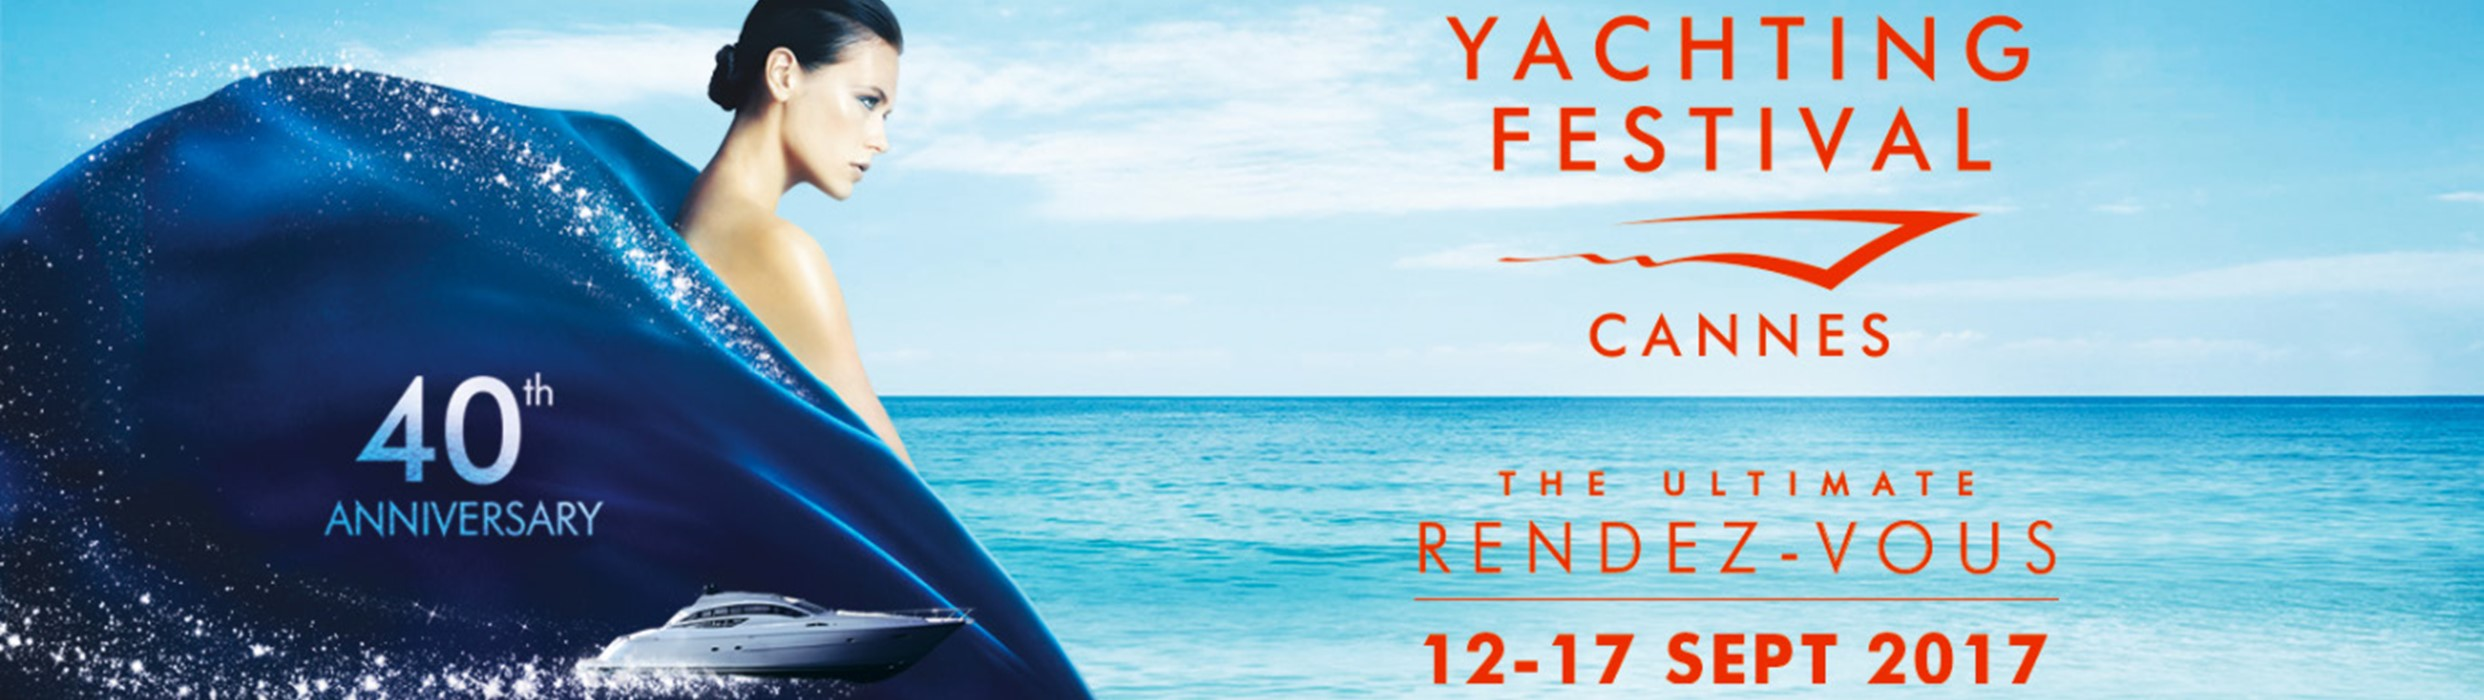 Yachting festival - Cannes - The ultimate rendez-vous. 12-17 SEPT 2017